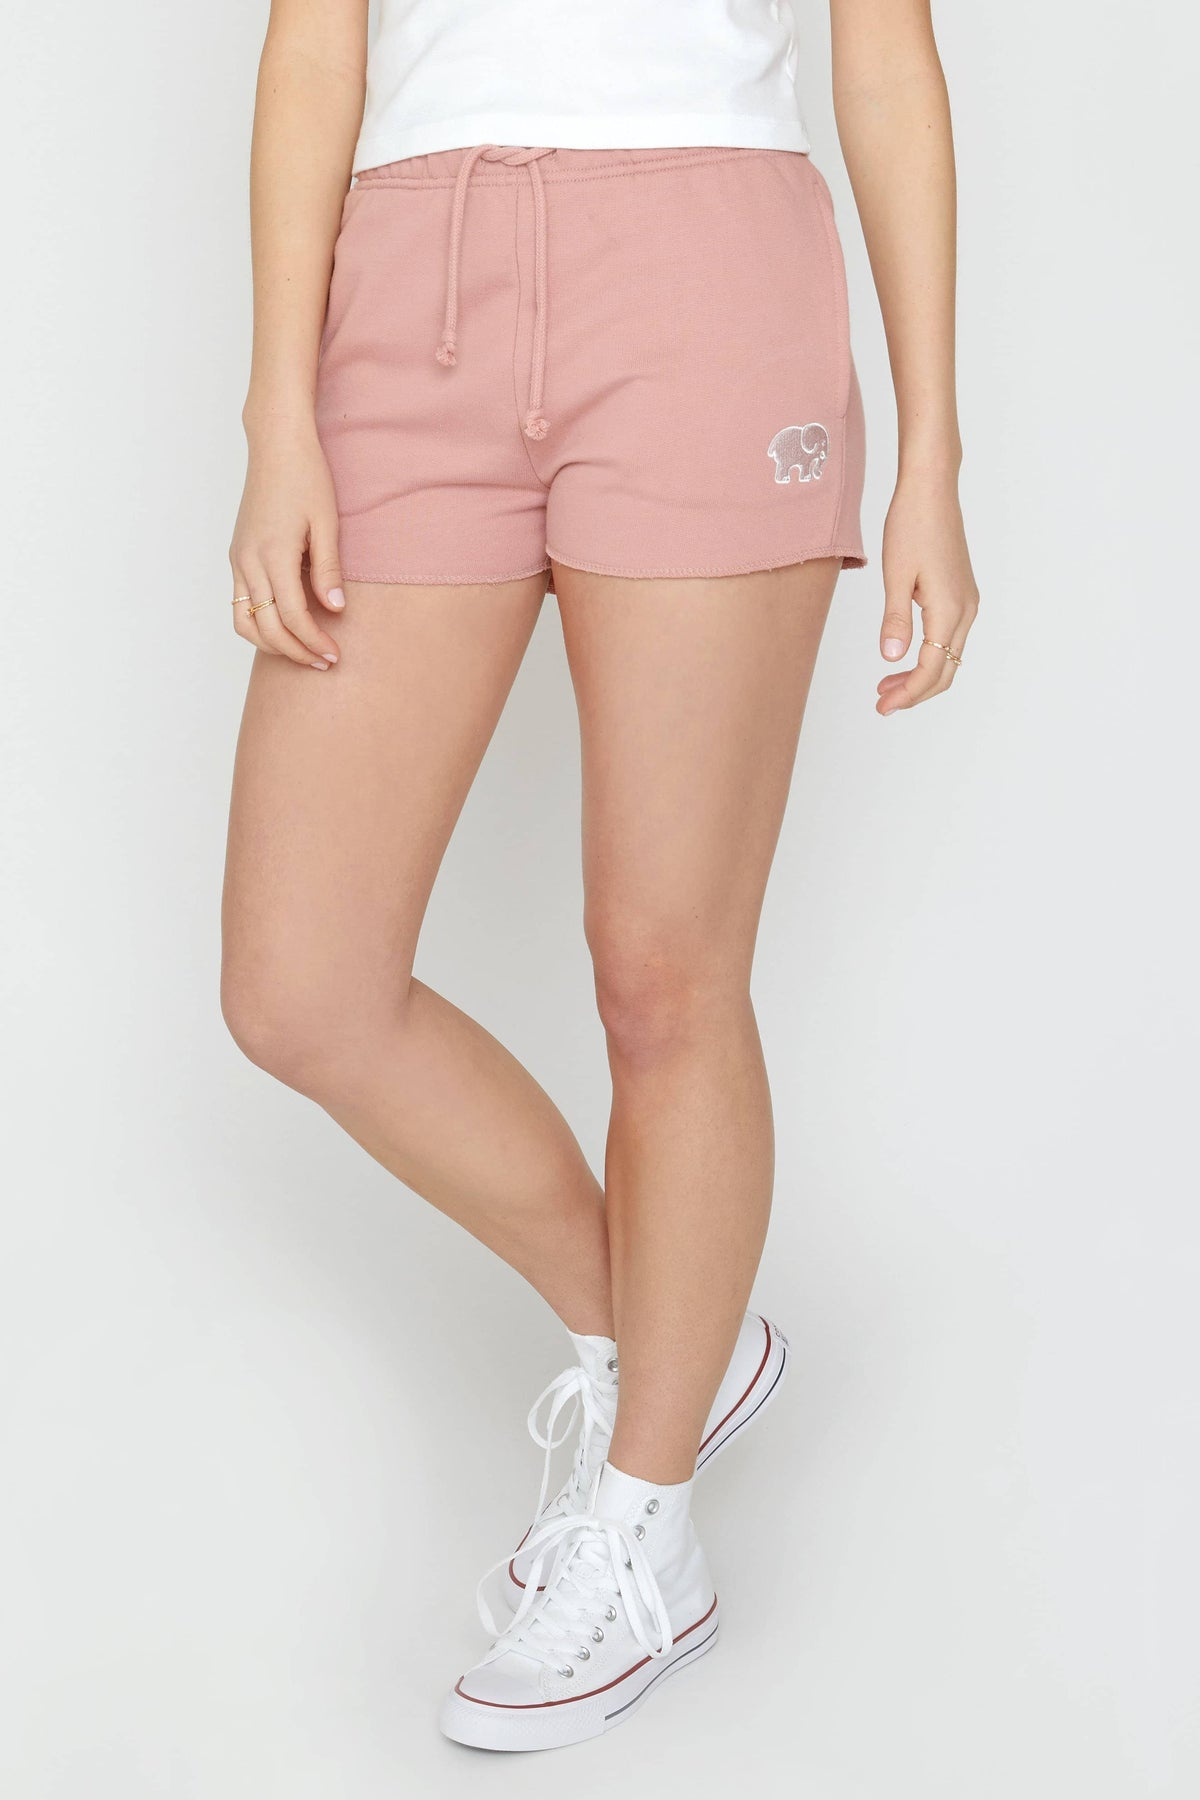 Ivory Ella Women's Bottoms XS Rose Quartz Organic Drawstring Shorts